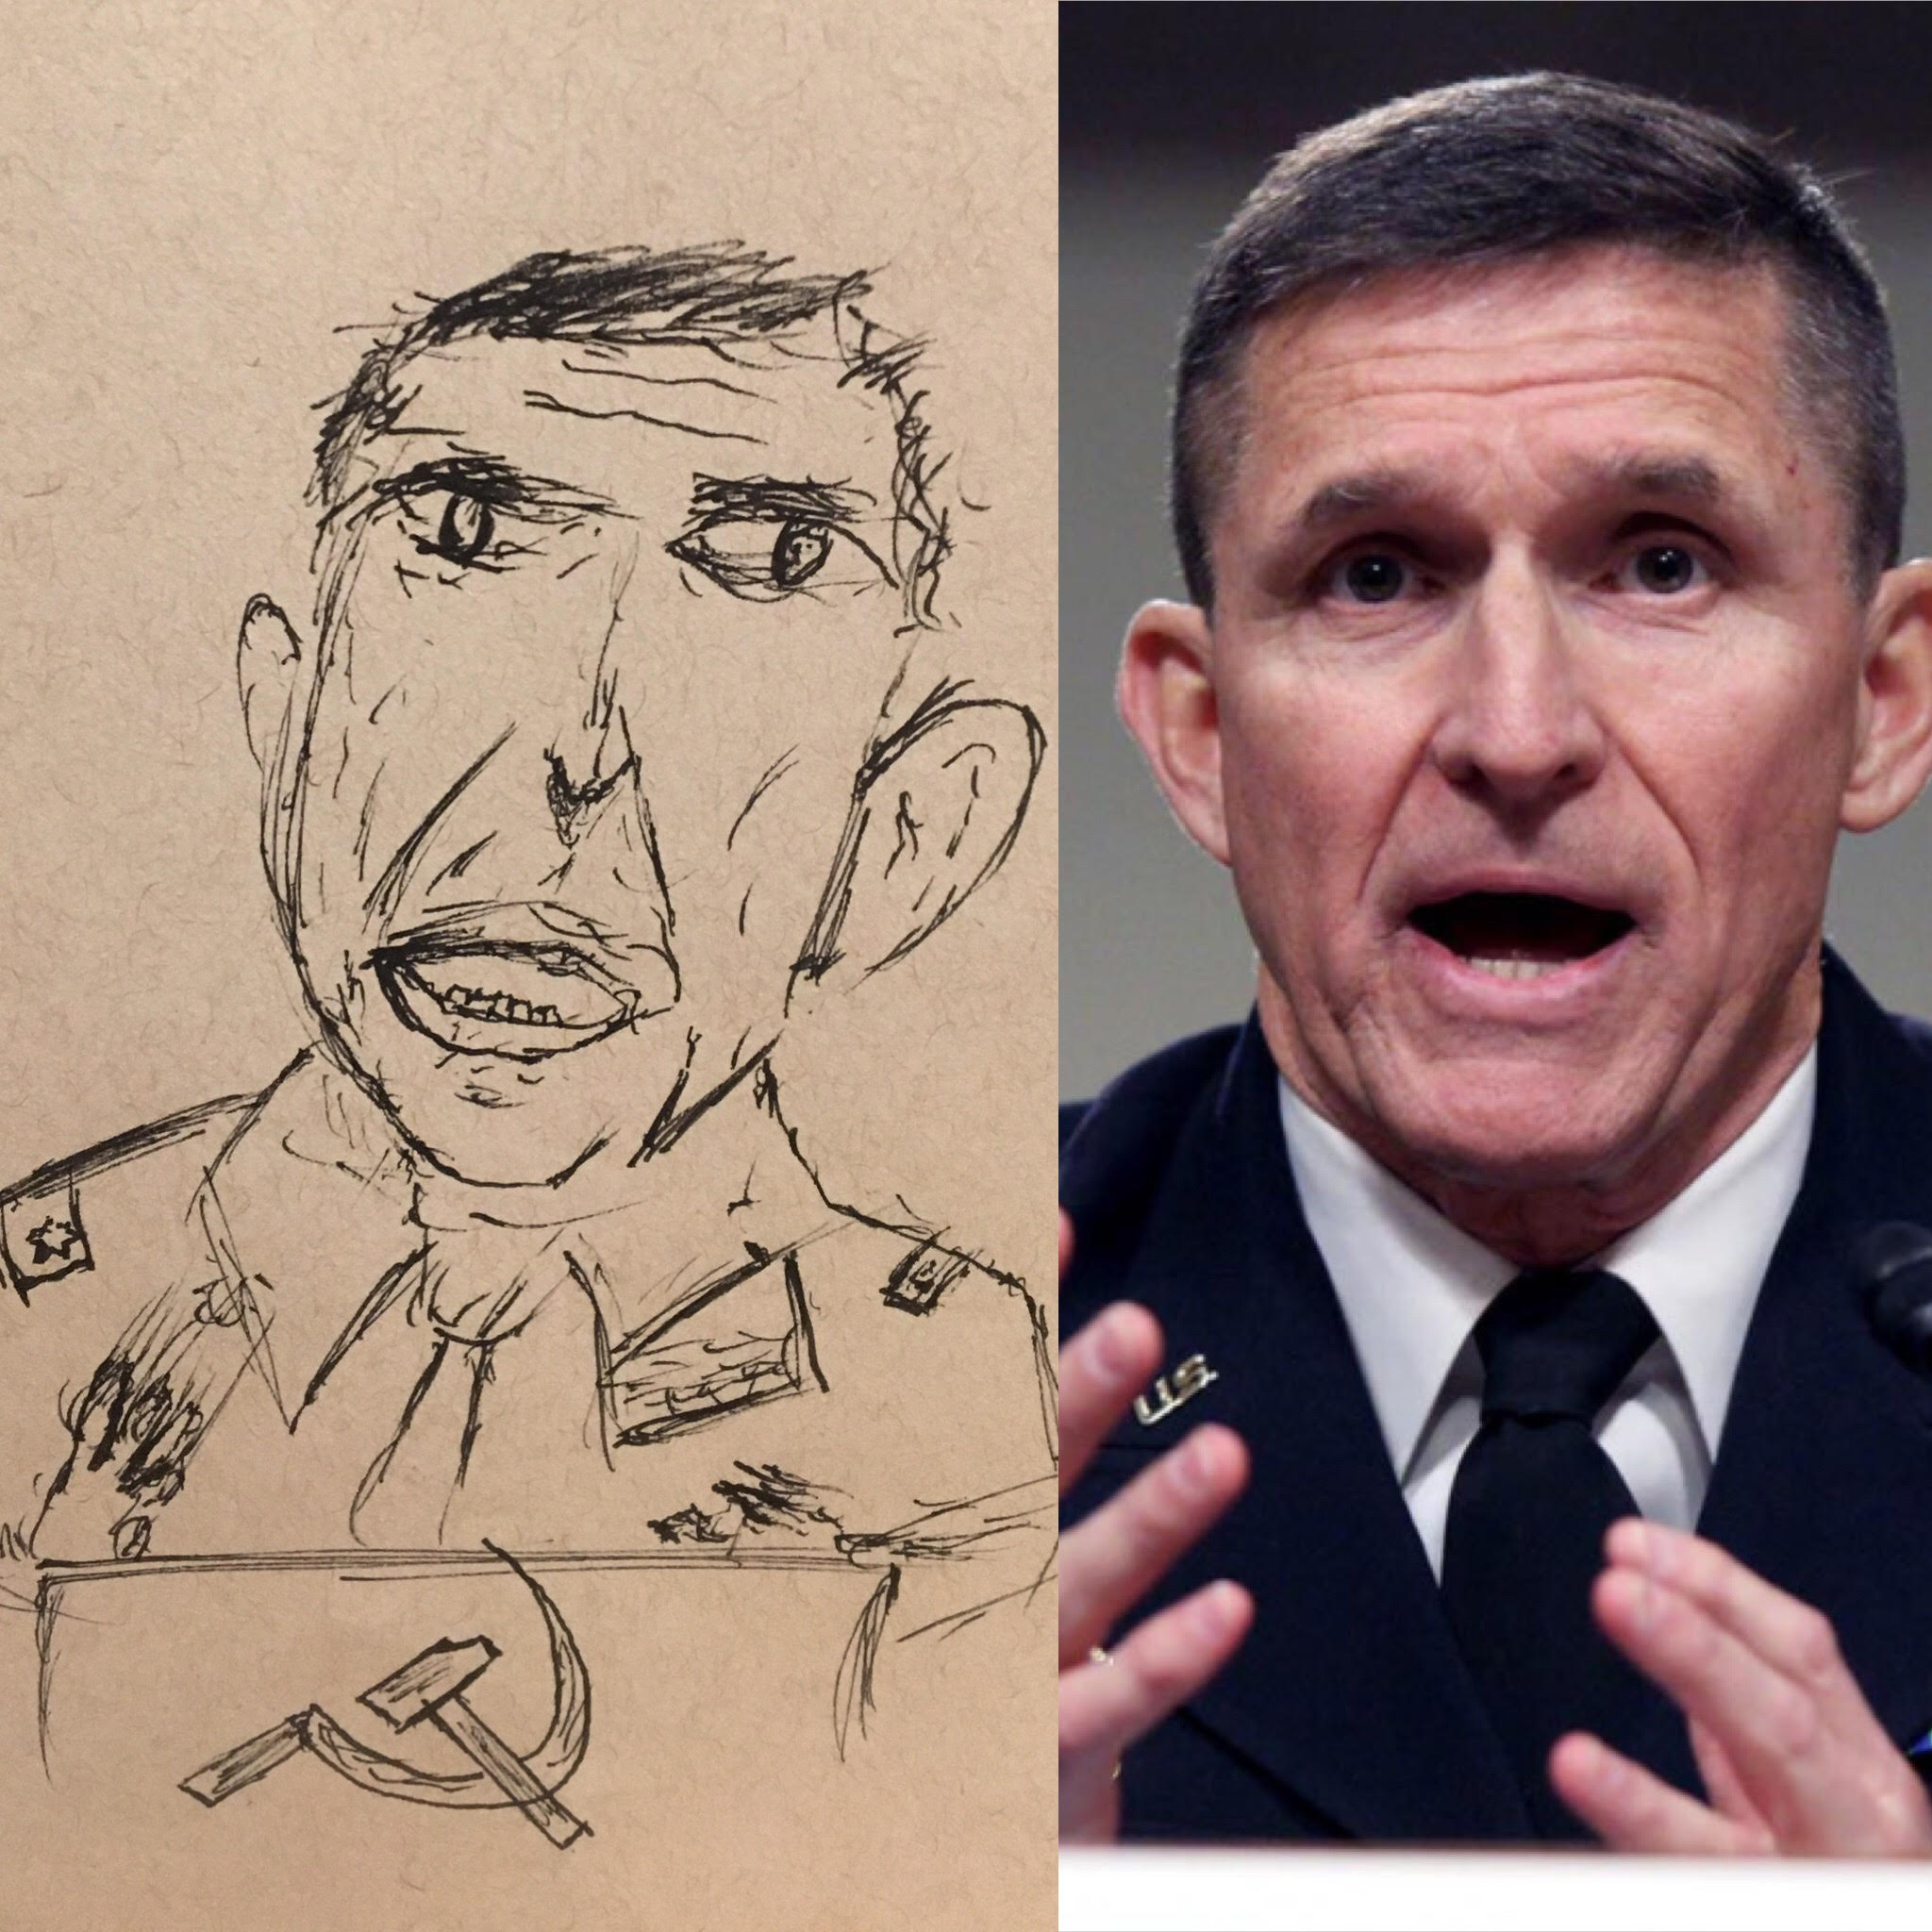 Michael Flynn Ugly Sketch with USSR Hammer and Sickle